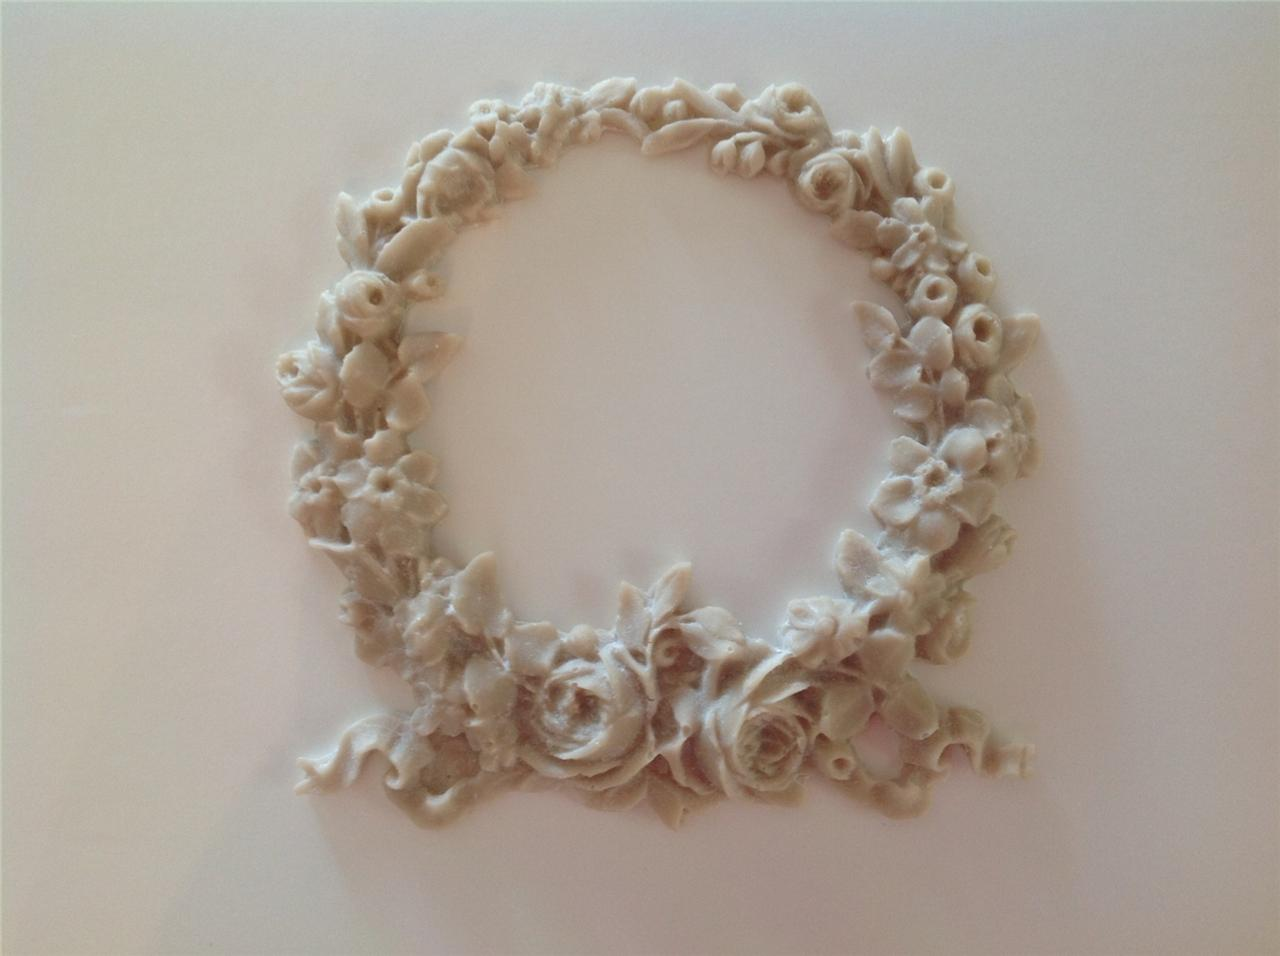 shabby n chic french provincial vintage furniture applique large rose wreath ebay. Black Bedroom Furniture Sets. Home Design Ideas